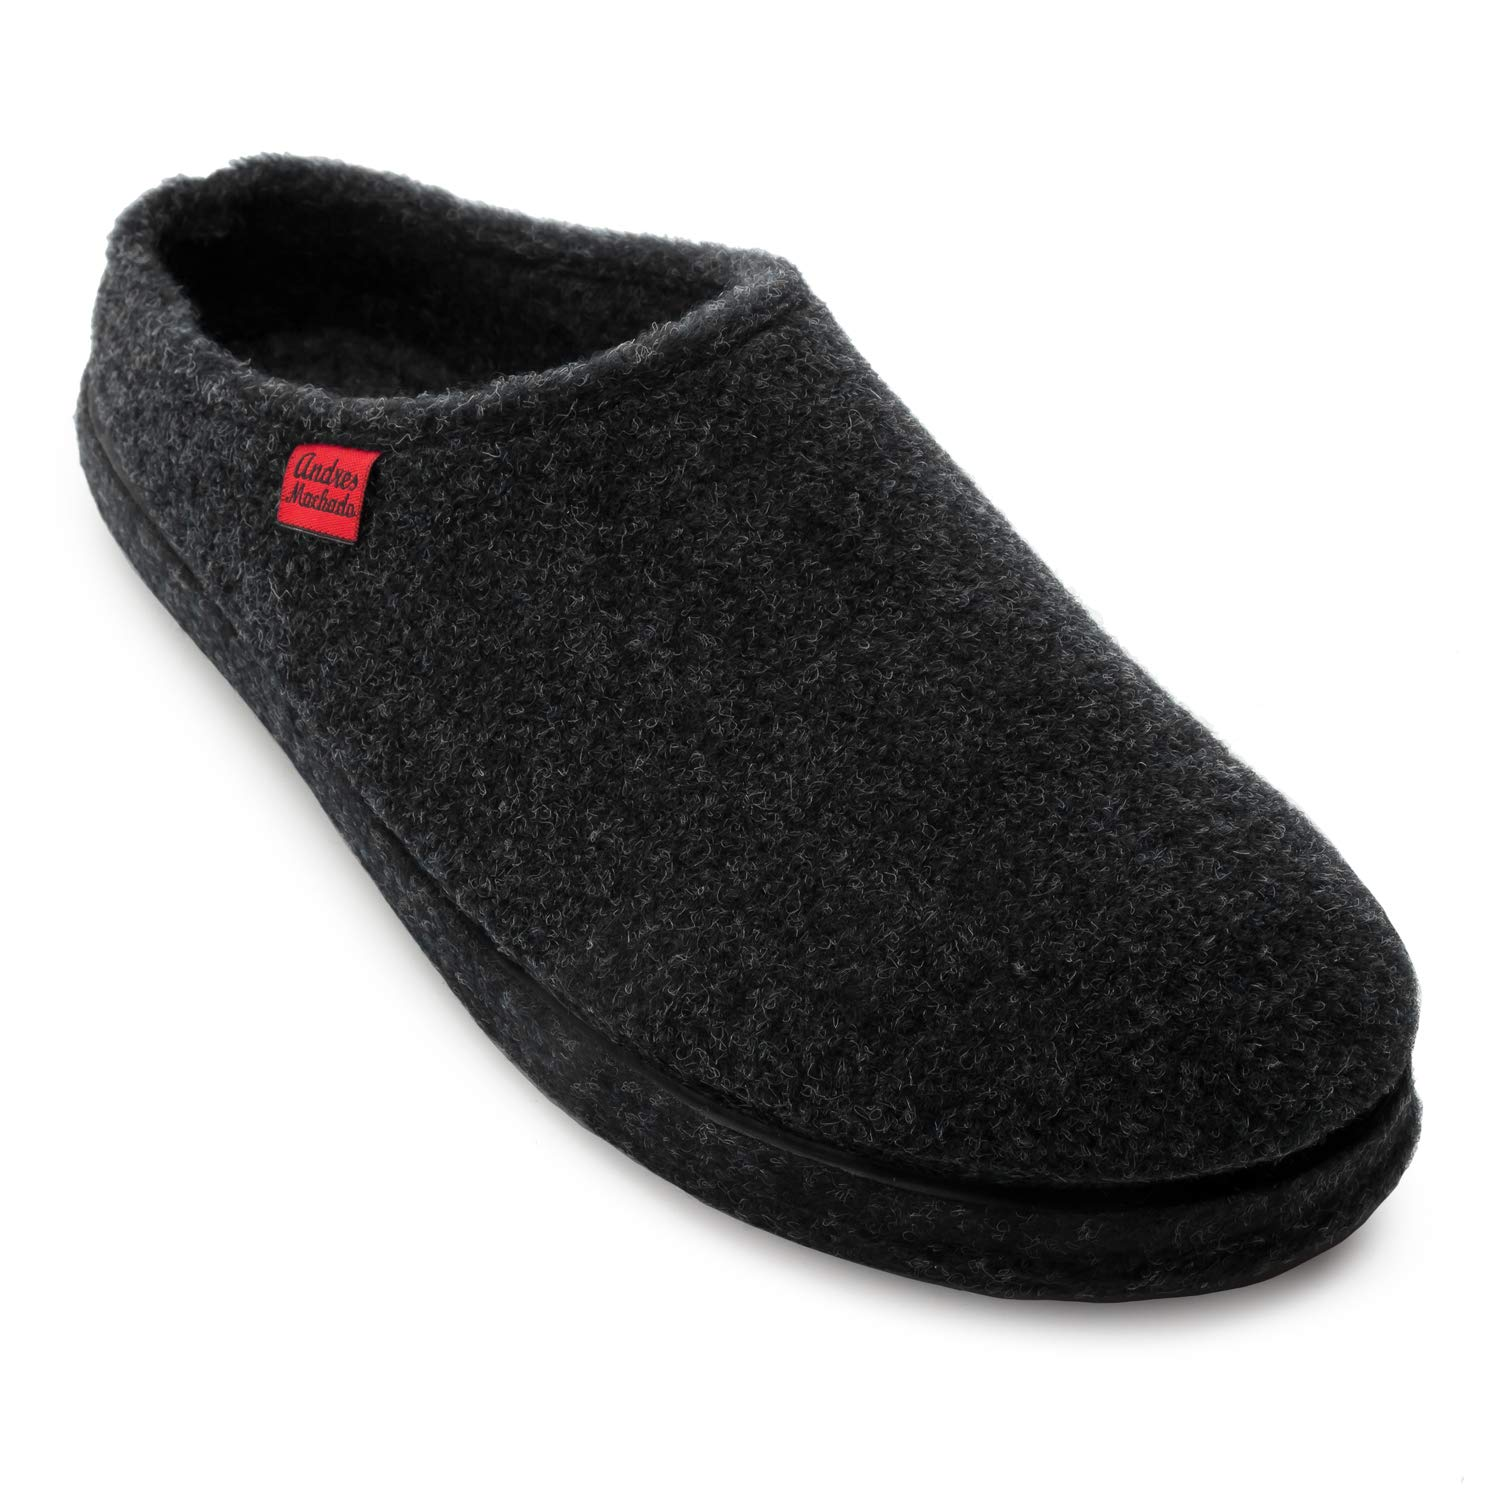 52cb73e3fe033 Andres Machado AM001 Comfortable Felt Slippers with Footbed Made in Spain  Unisex - Small, Medium & Big Sizes: UK 0.5 to 14 / EU 32 to 50. + Child UK  8 ...